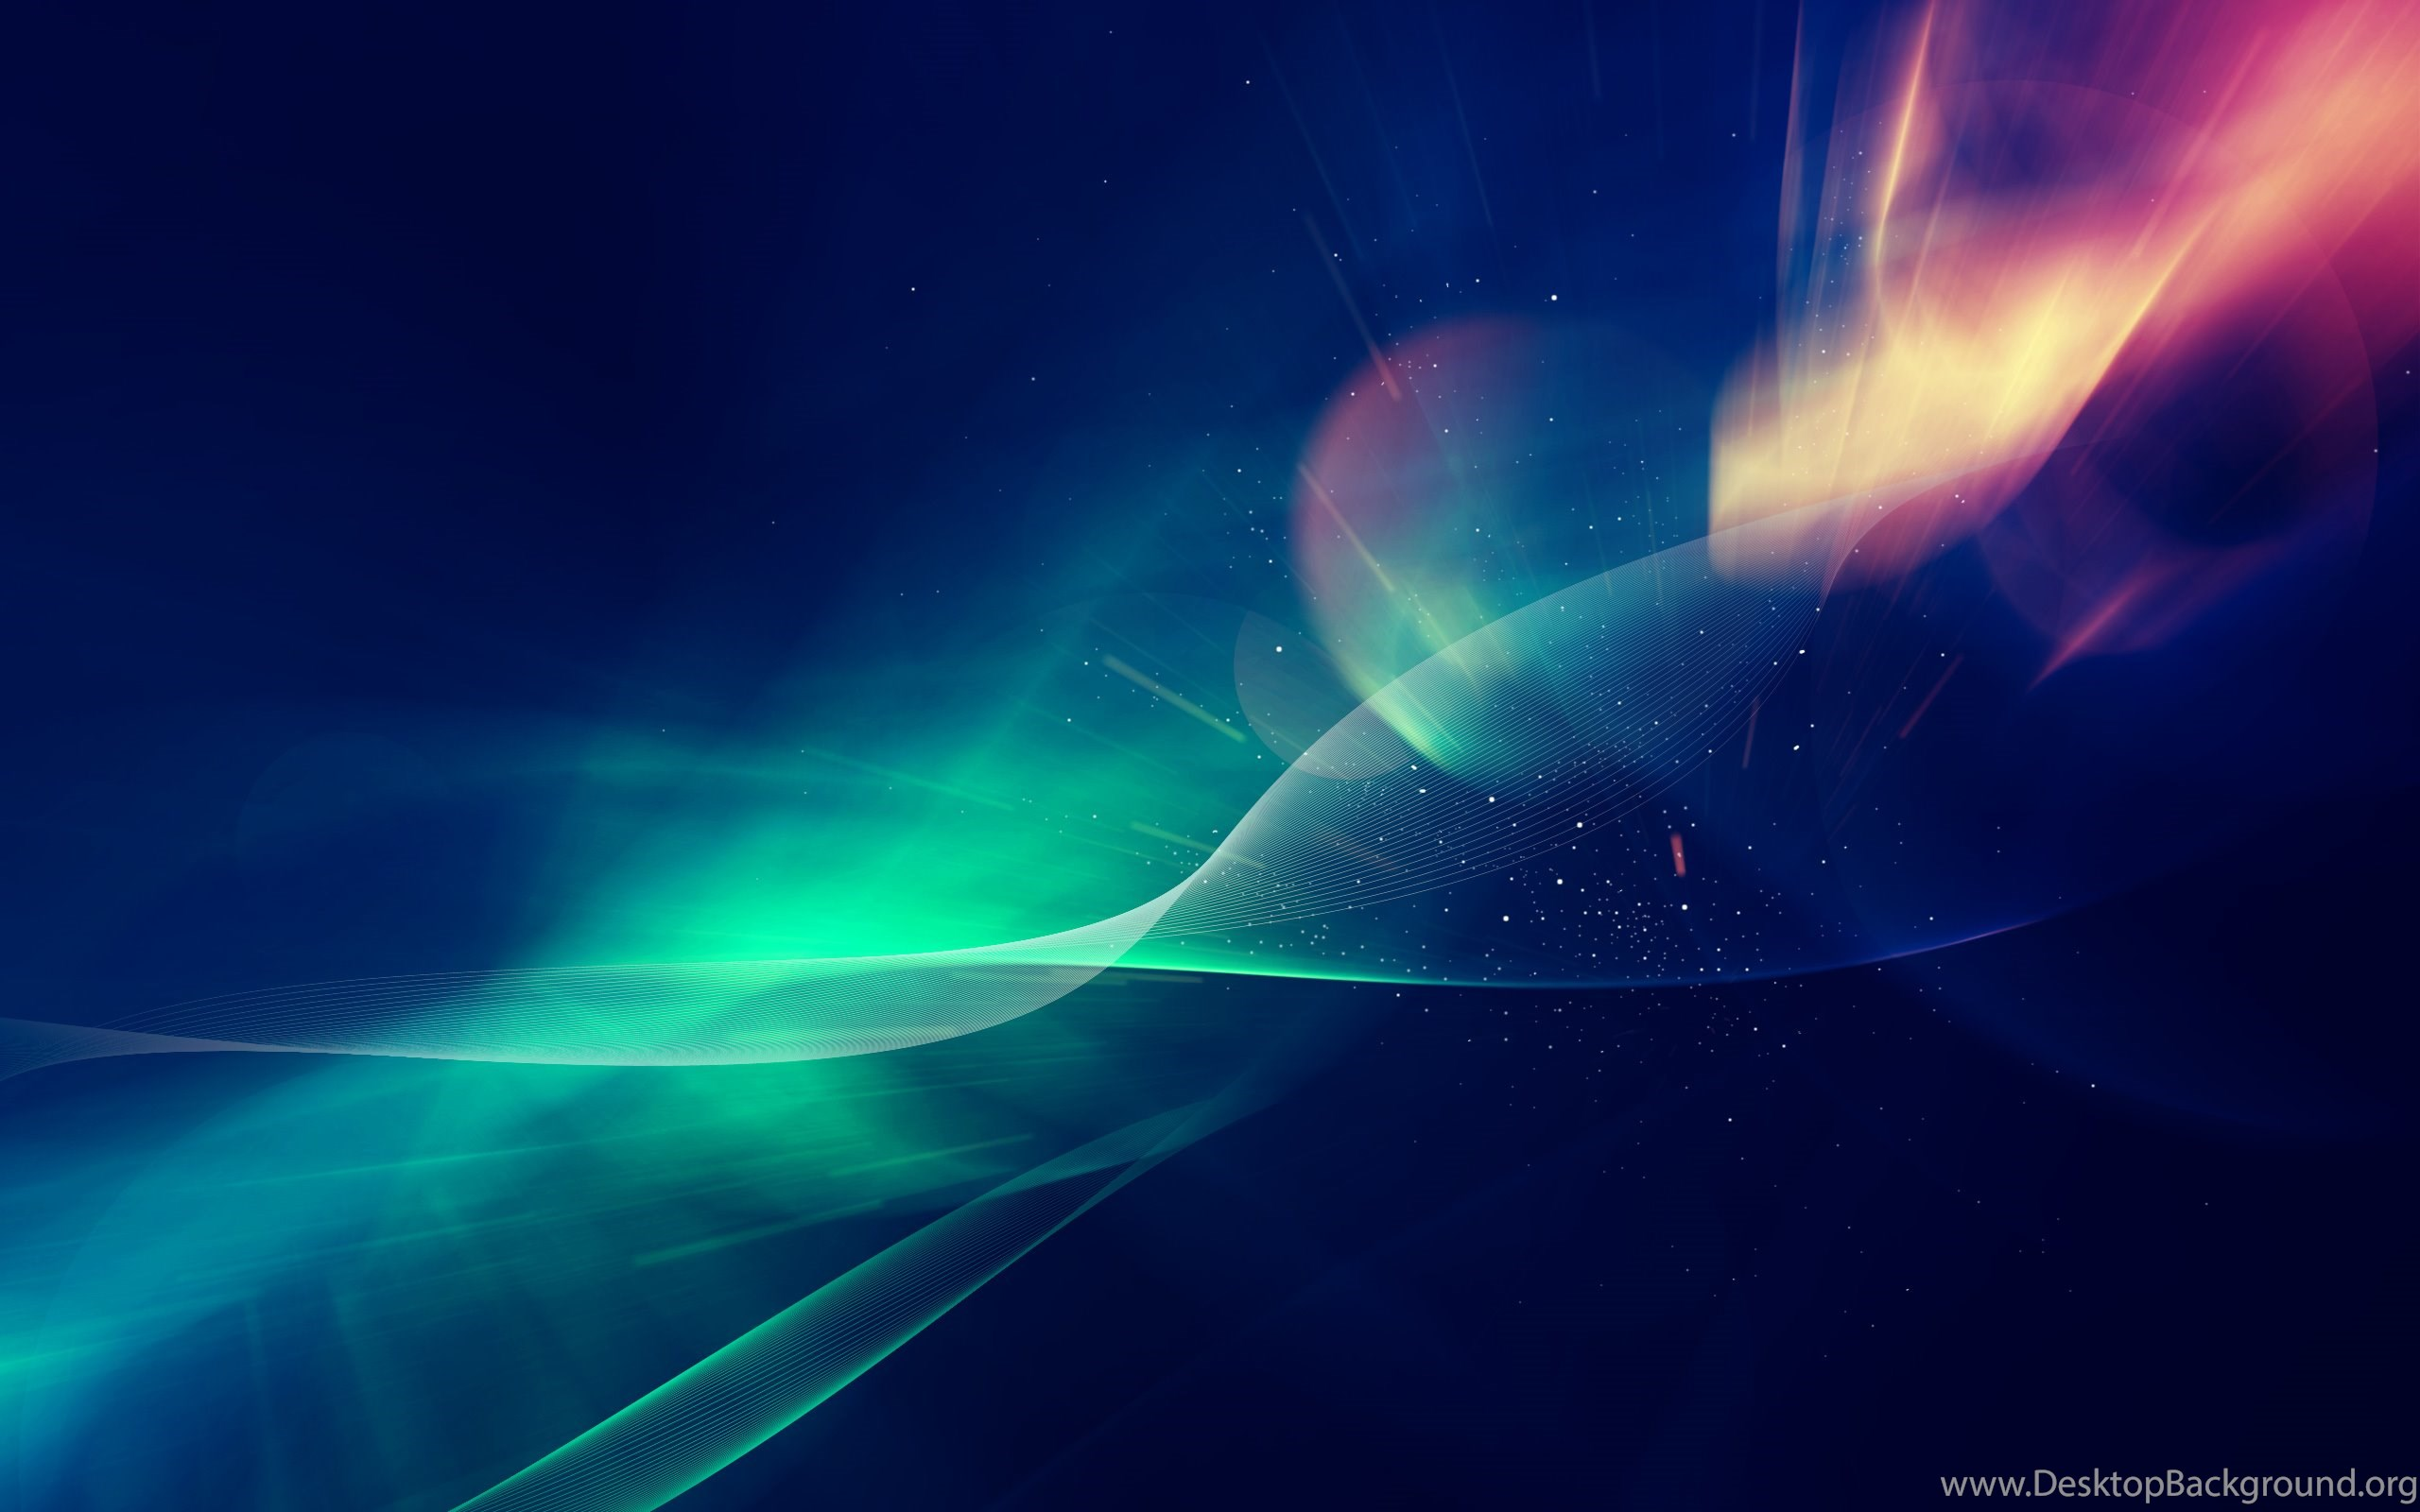 Windows 10 awesome full hd wallpapers desktop background - Full hd wallpaper pc download ...